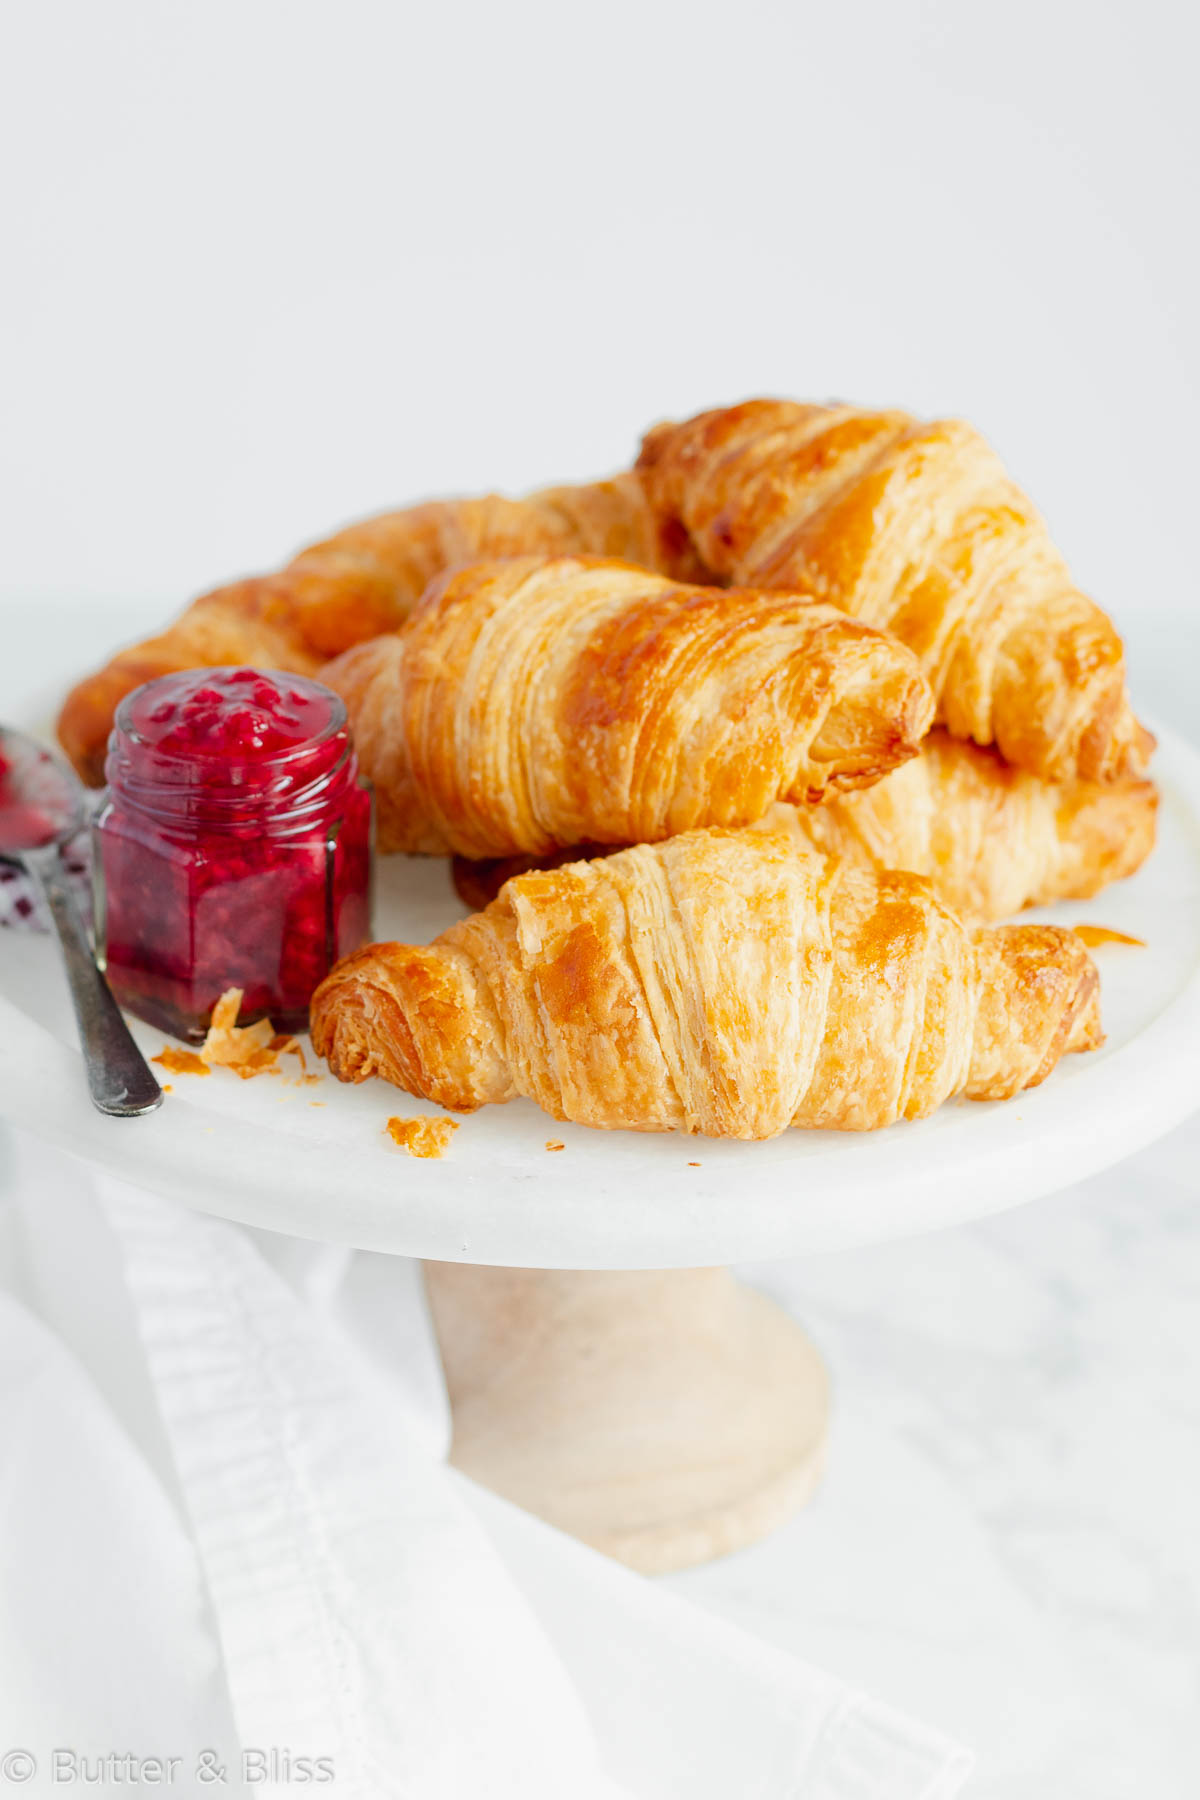 Croissants on a platter with jam